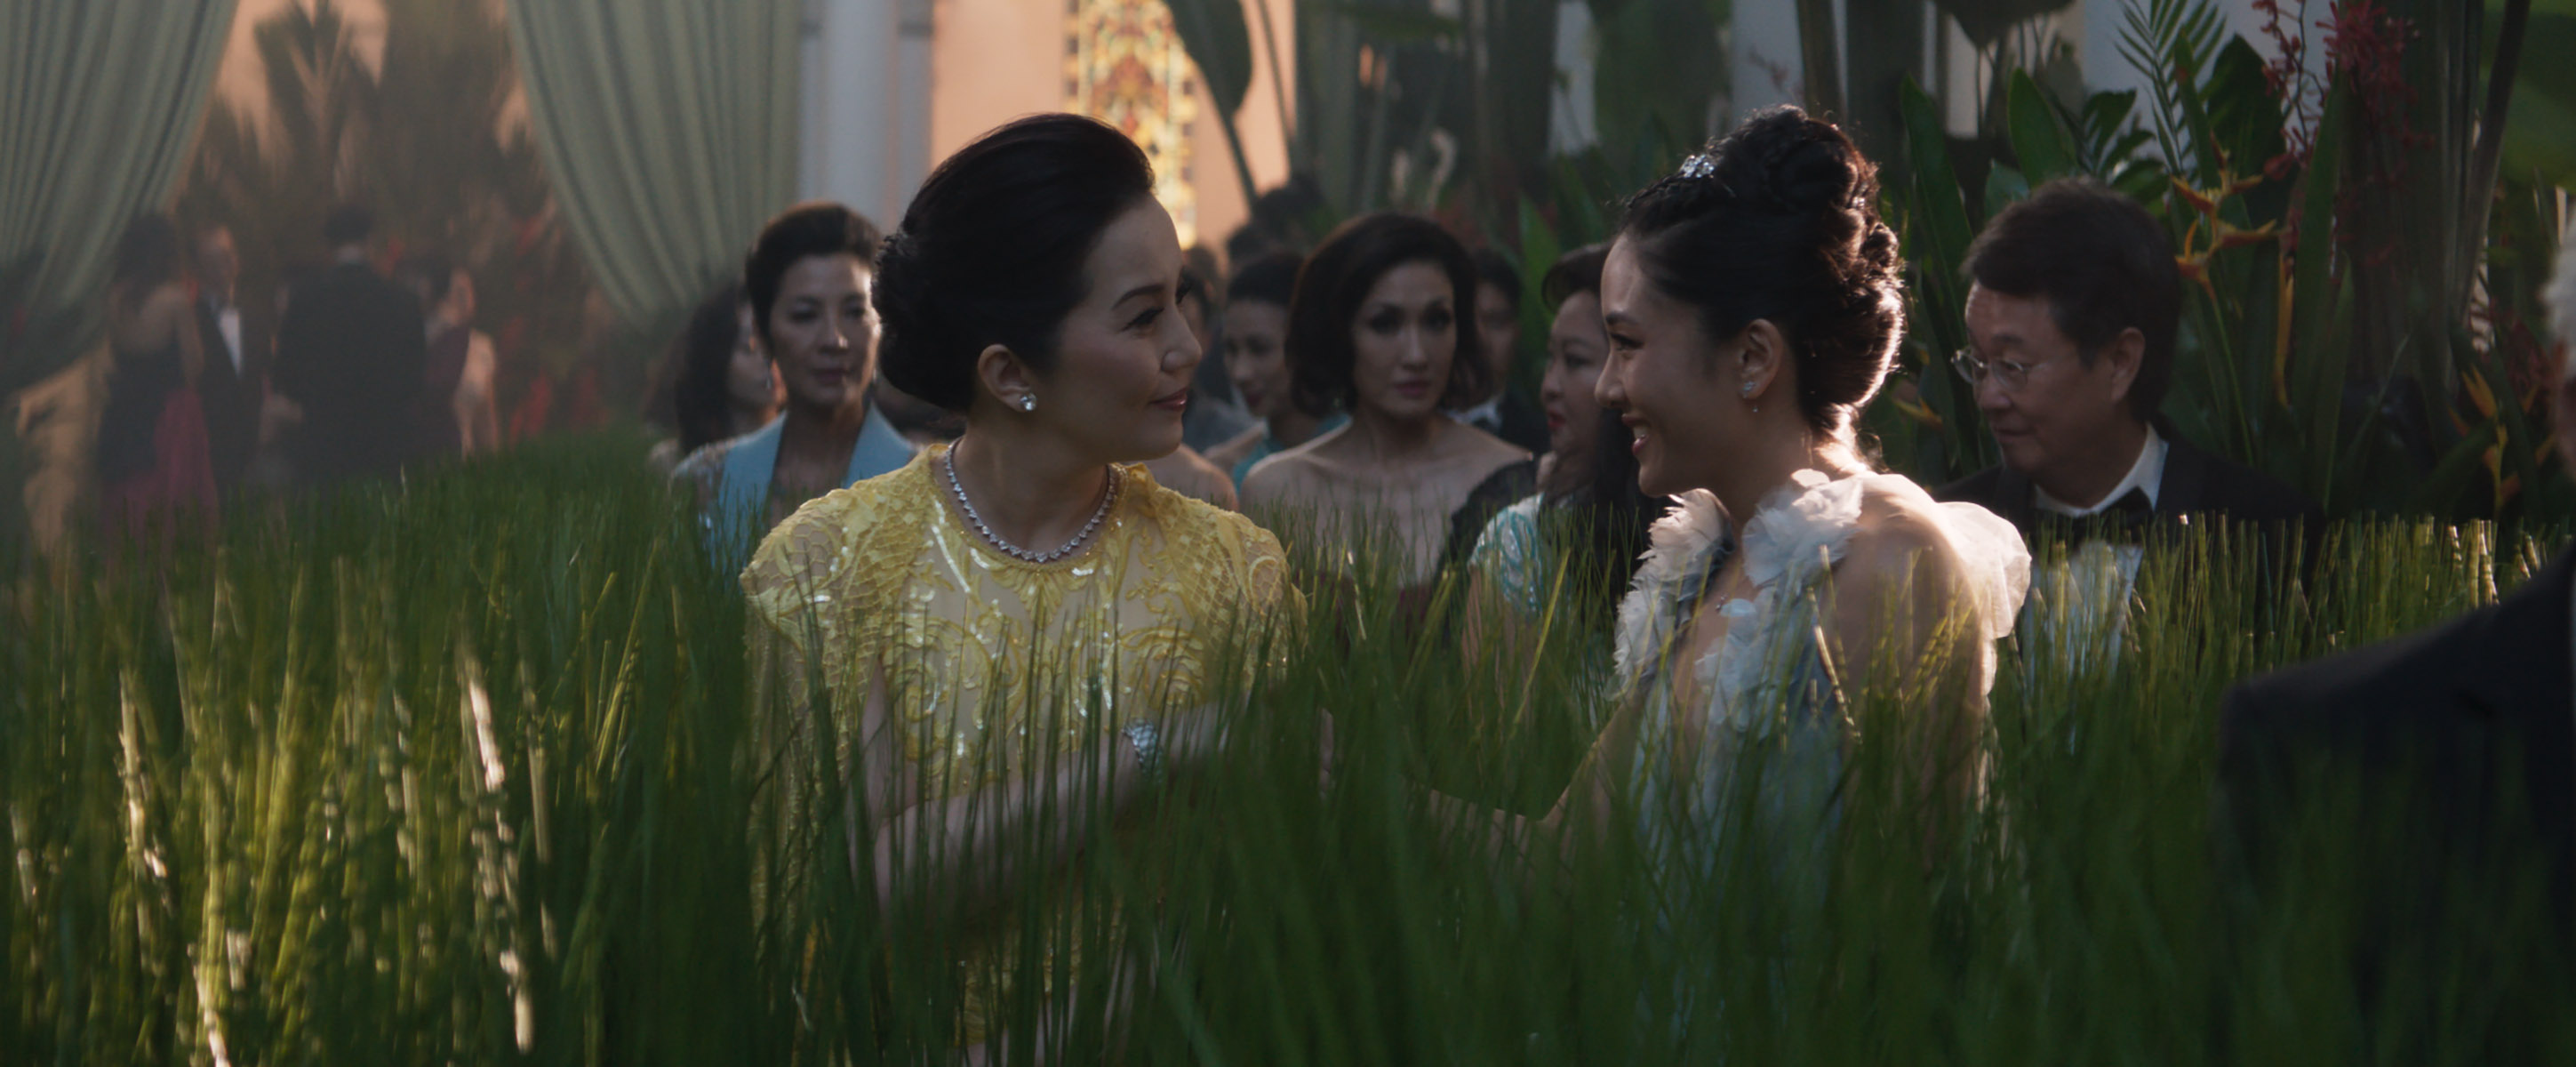 Exclusive Everything To Know About The Crazy Rich Asians